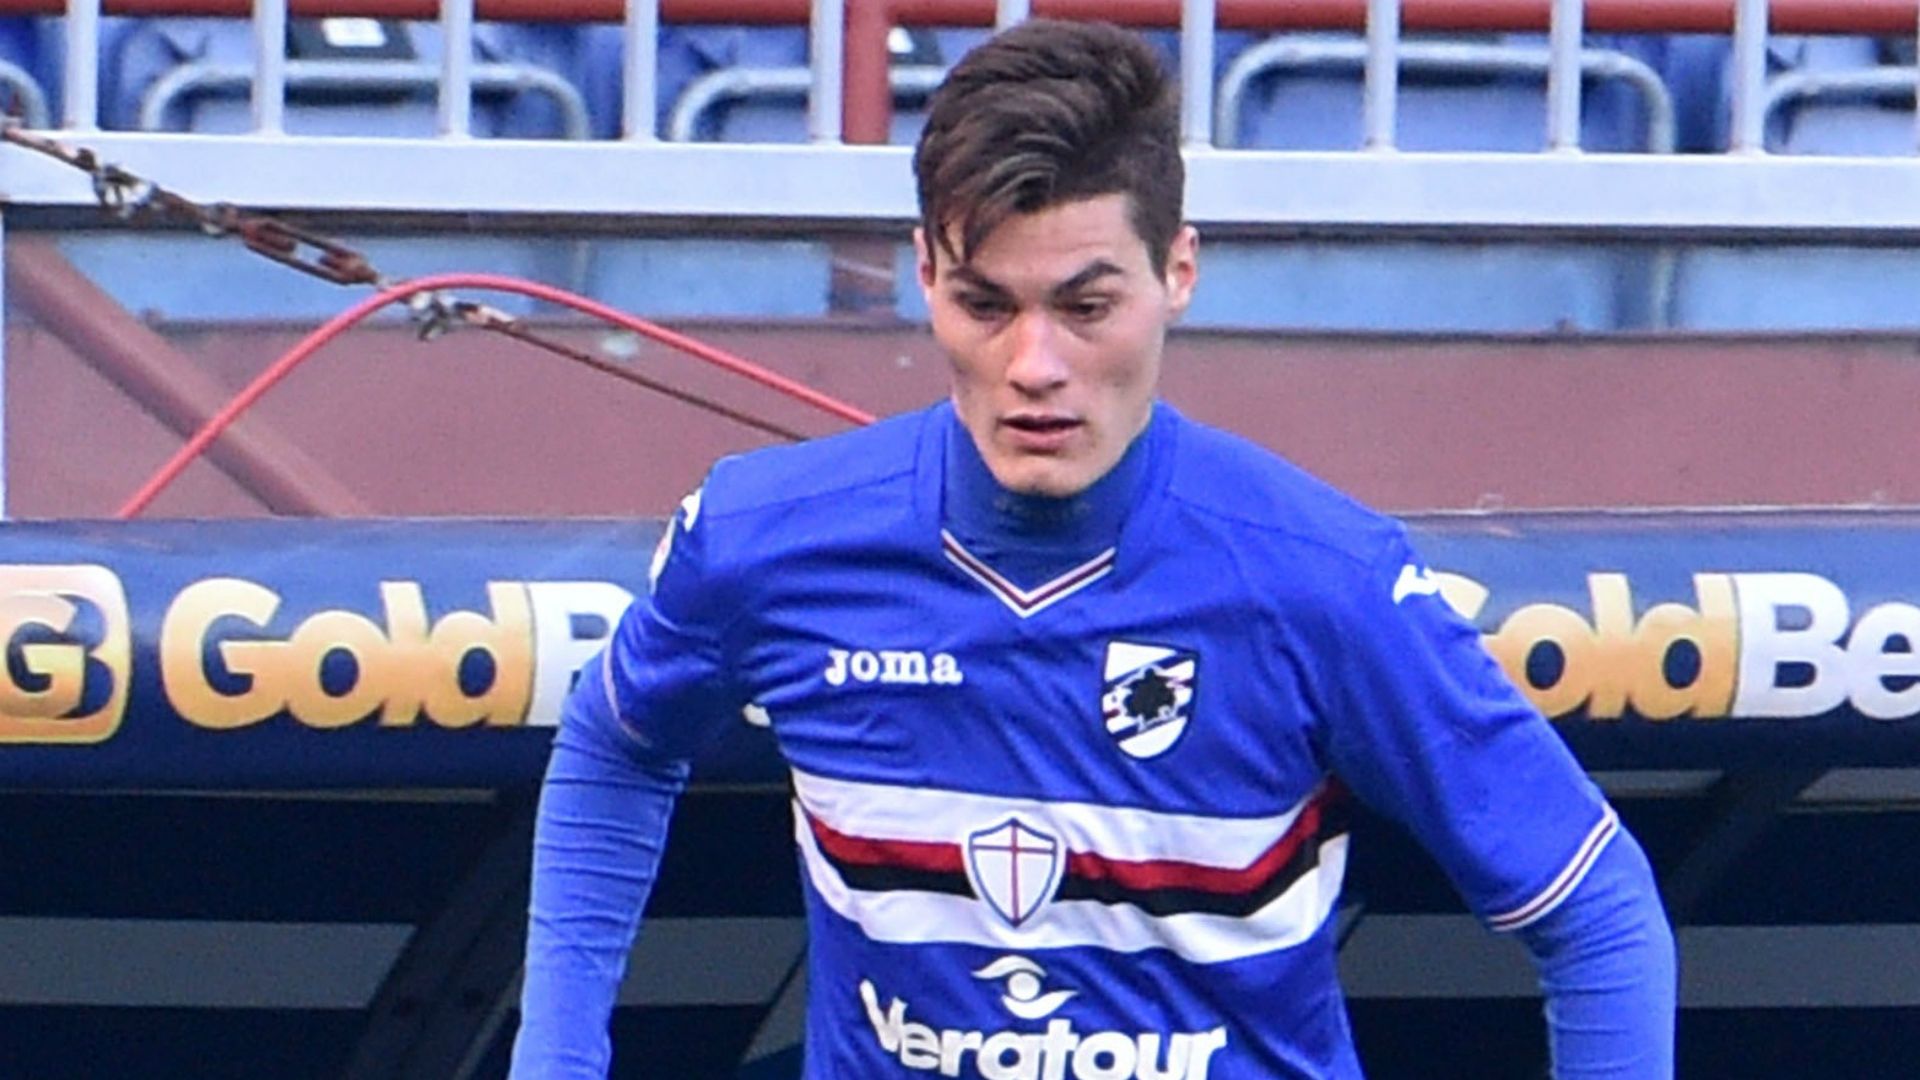 Juventus are now showing their faith in 21-year-old Patrik Schick.